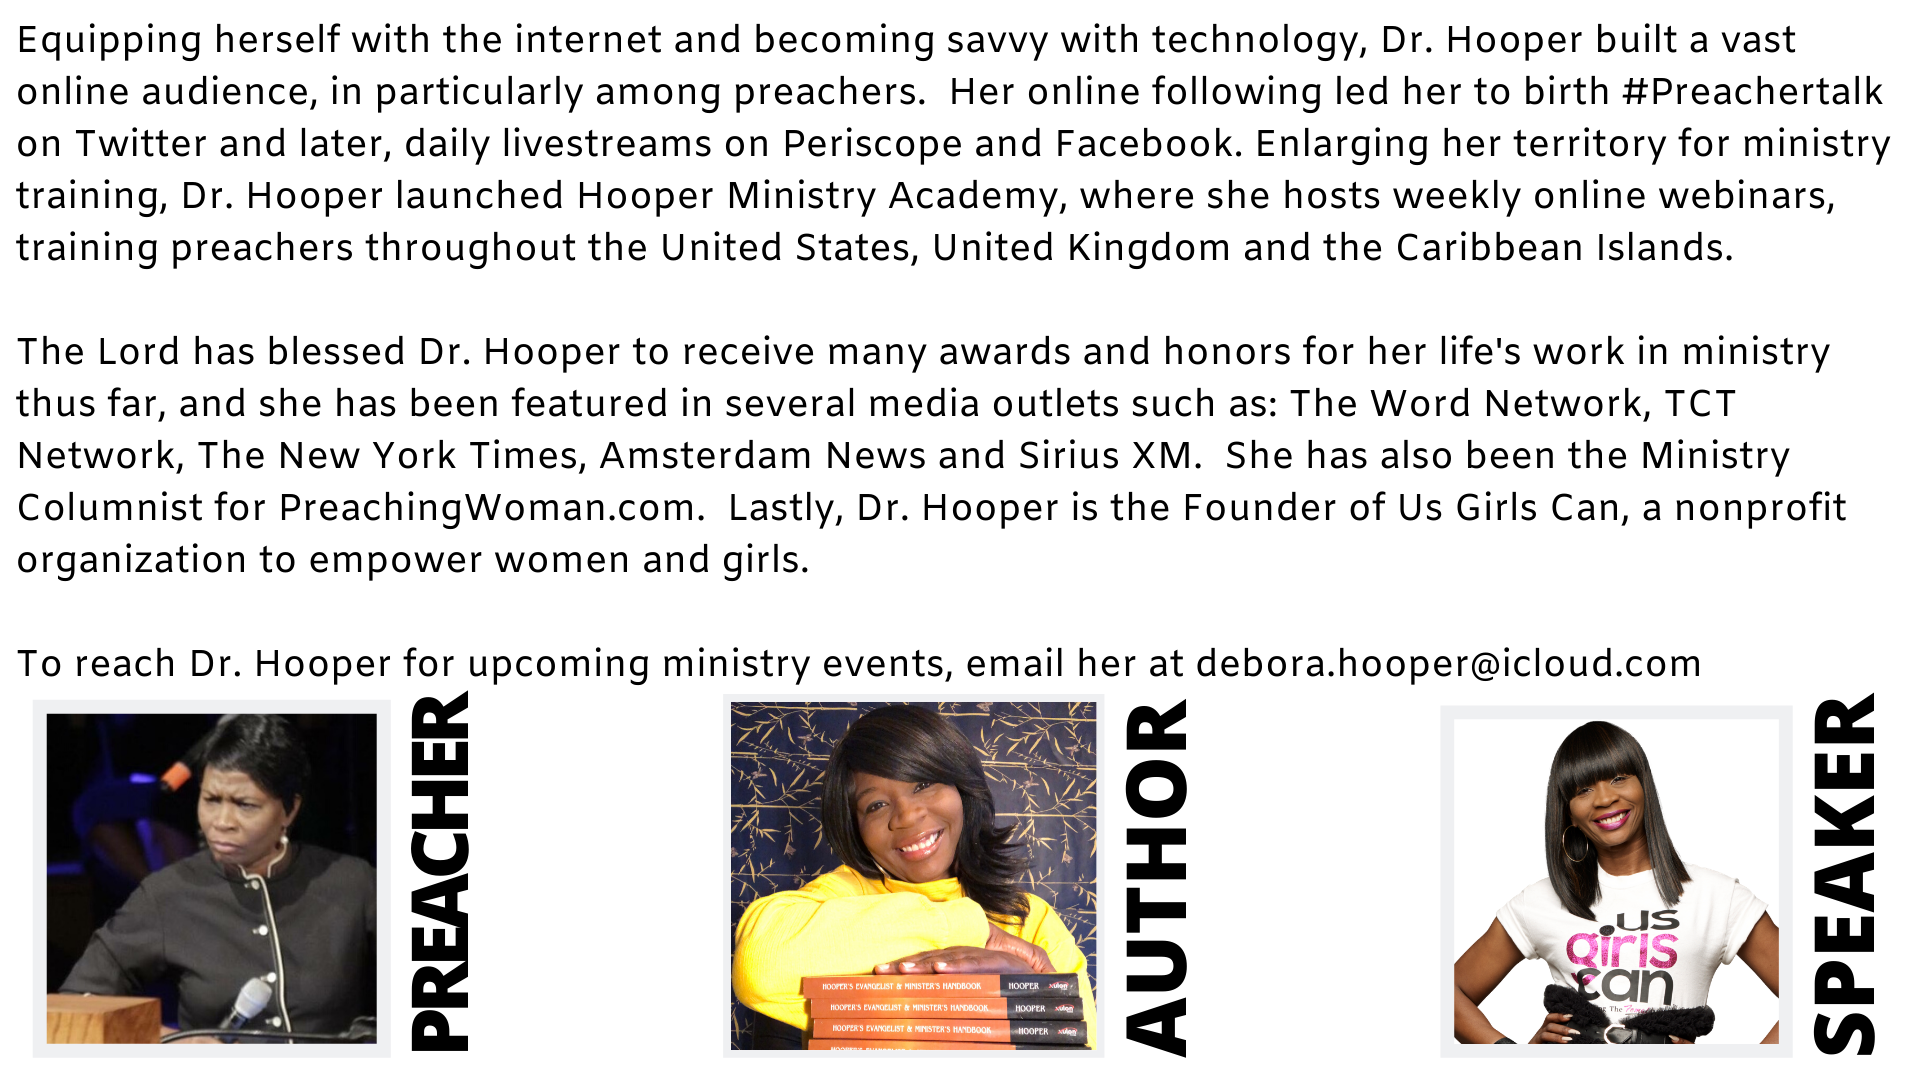 About Dr. Debora Hooper